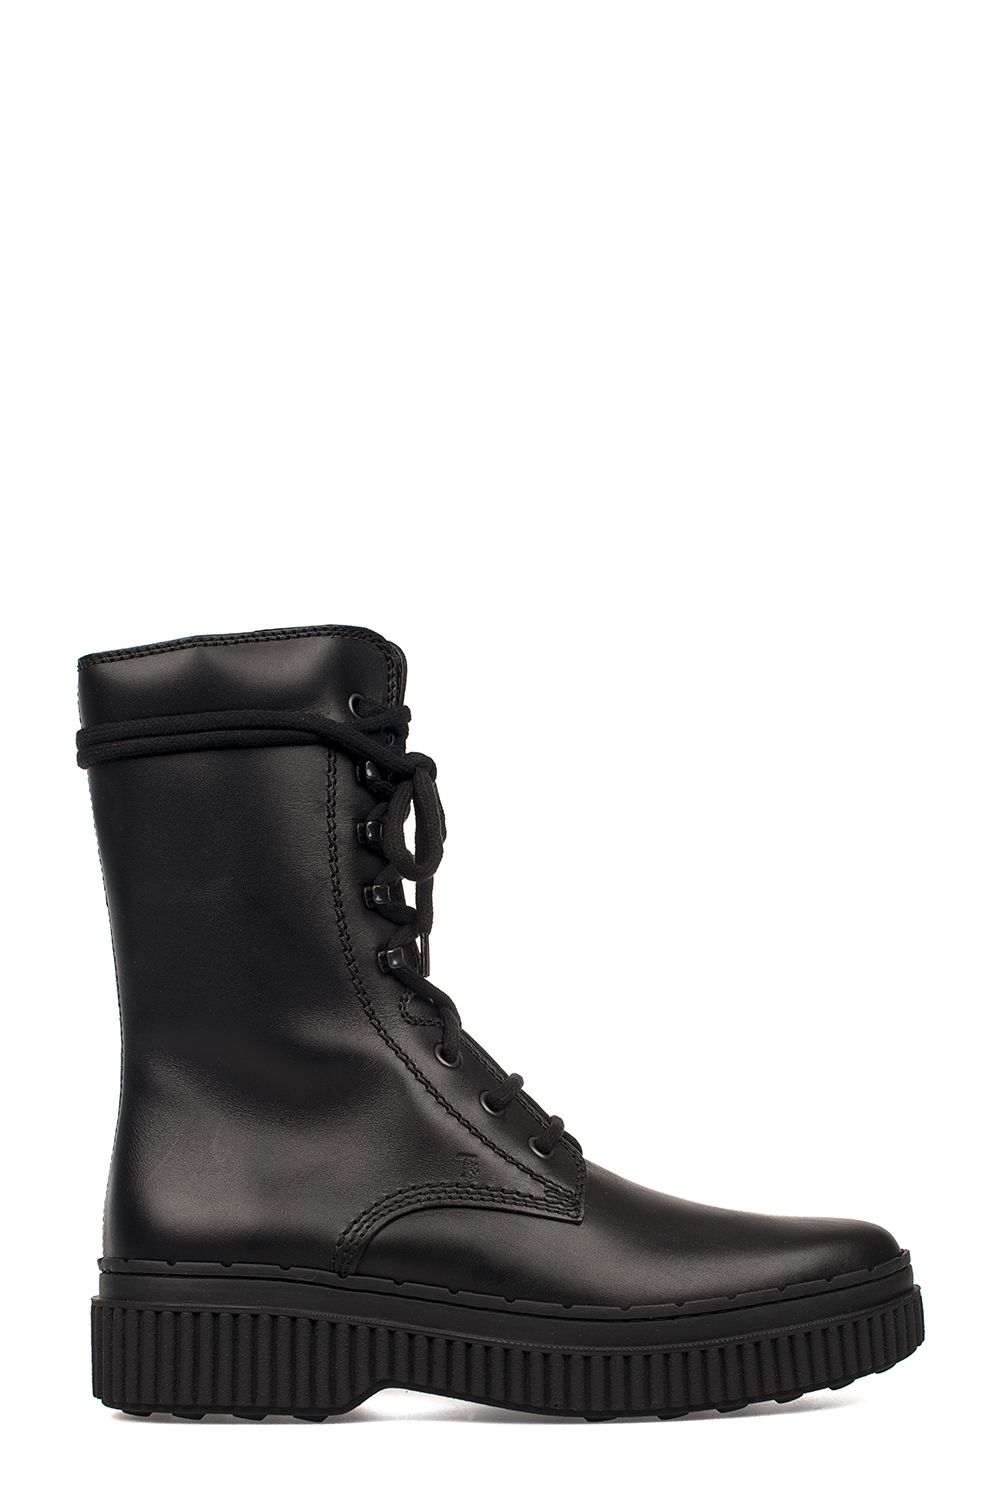 Tod's  BLACK LEATHER LOW BOOT